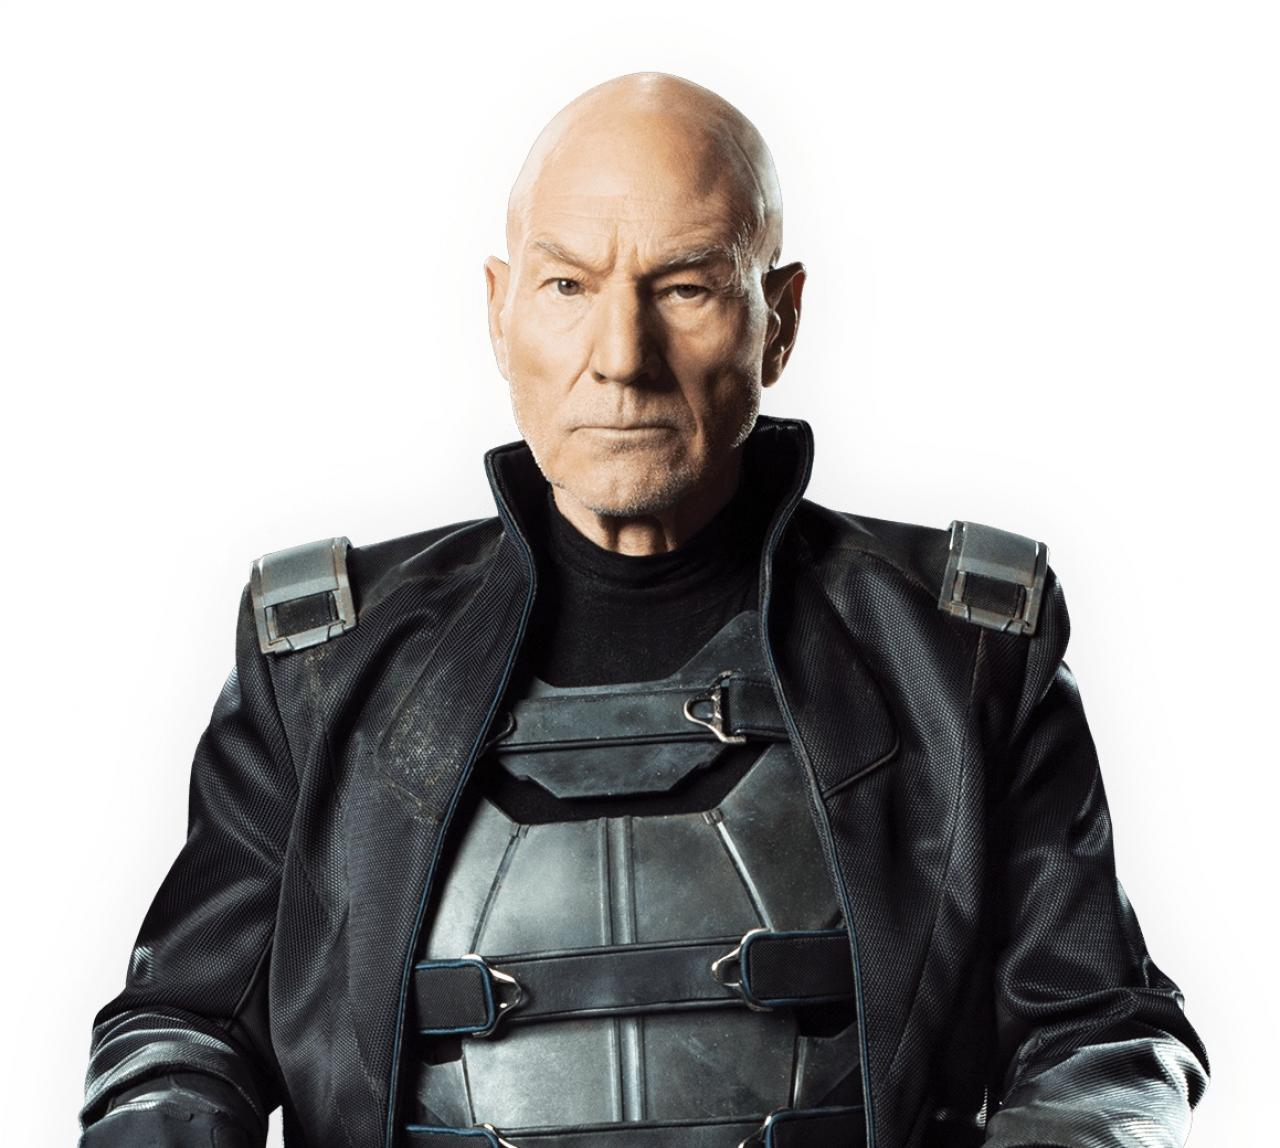 X-Men Days of Future Past character photo - Patrick ... X Men Days Of Future Past Professor X